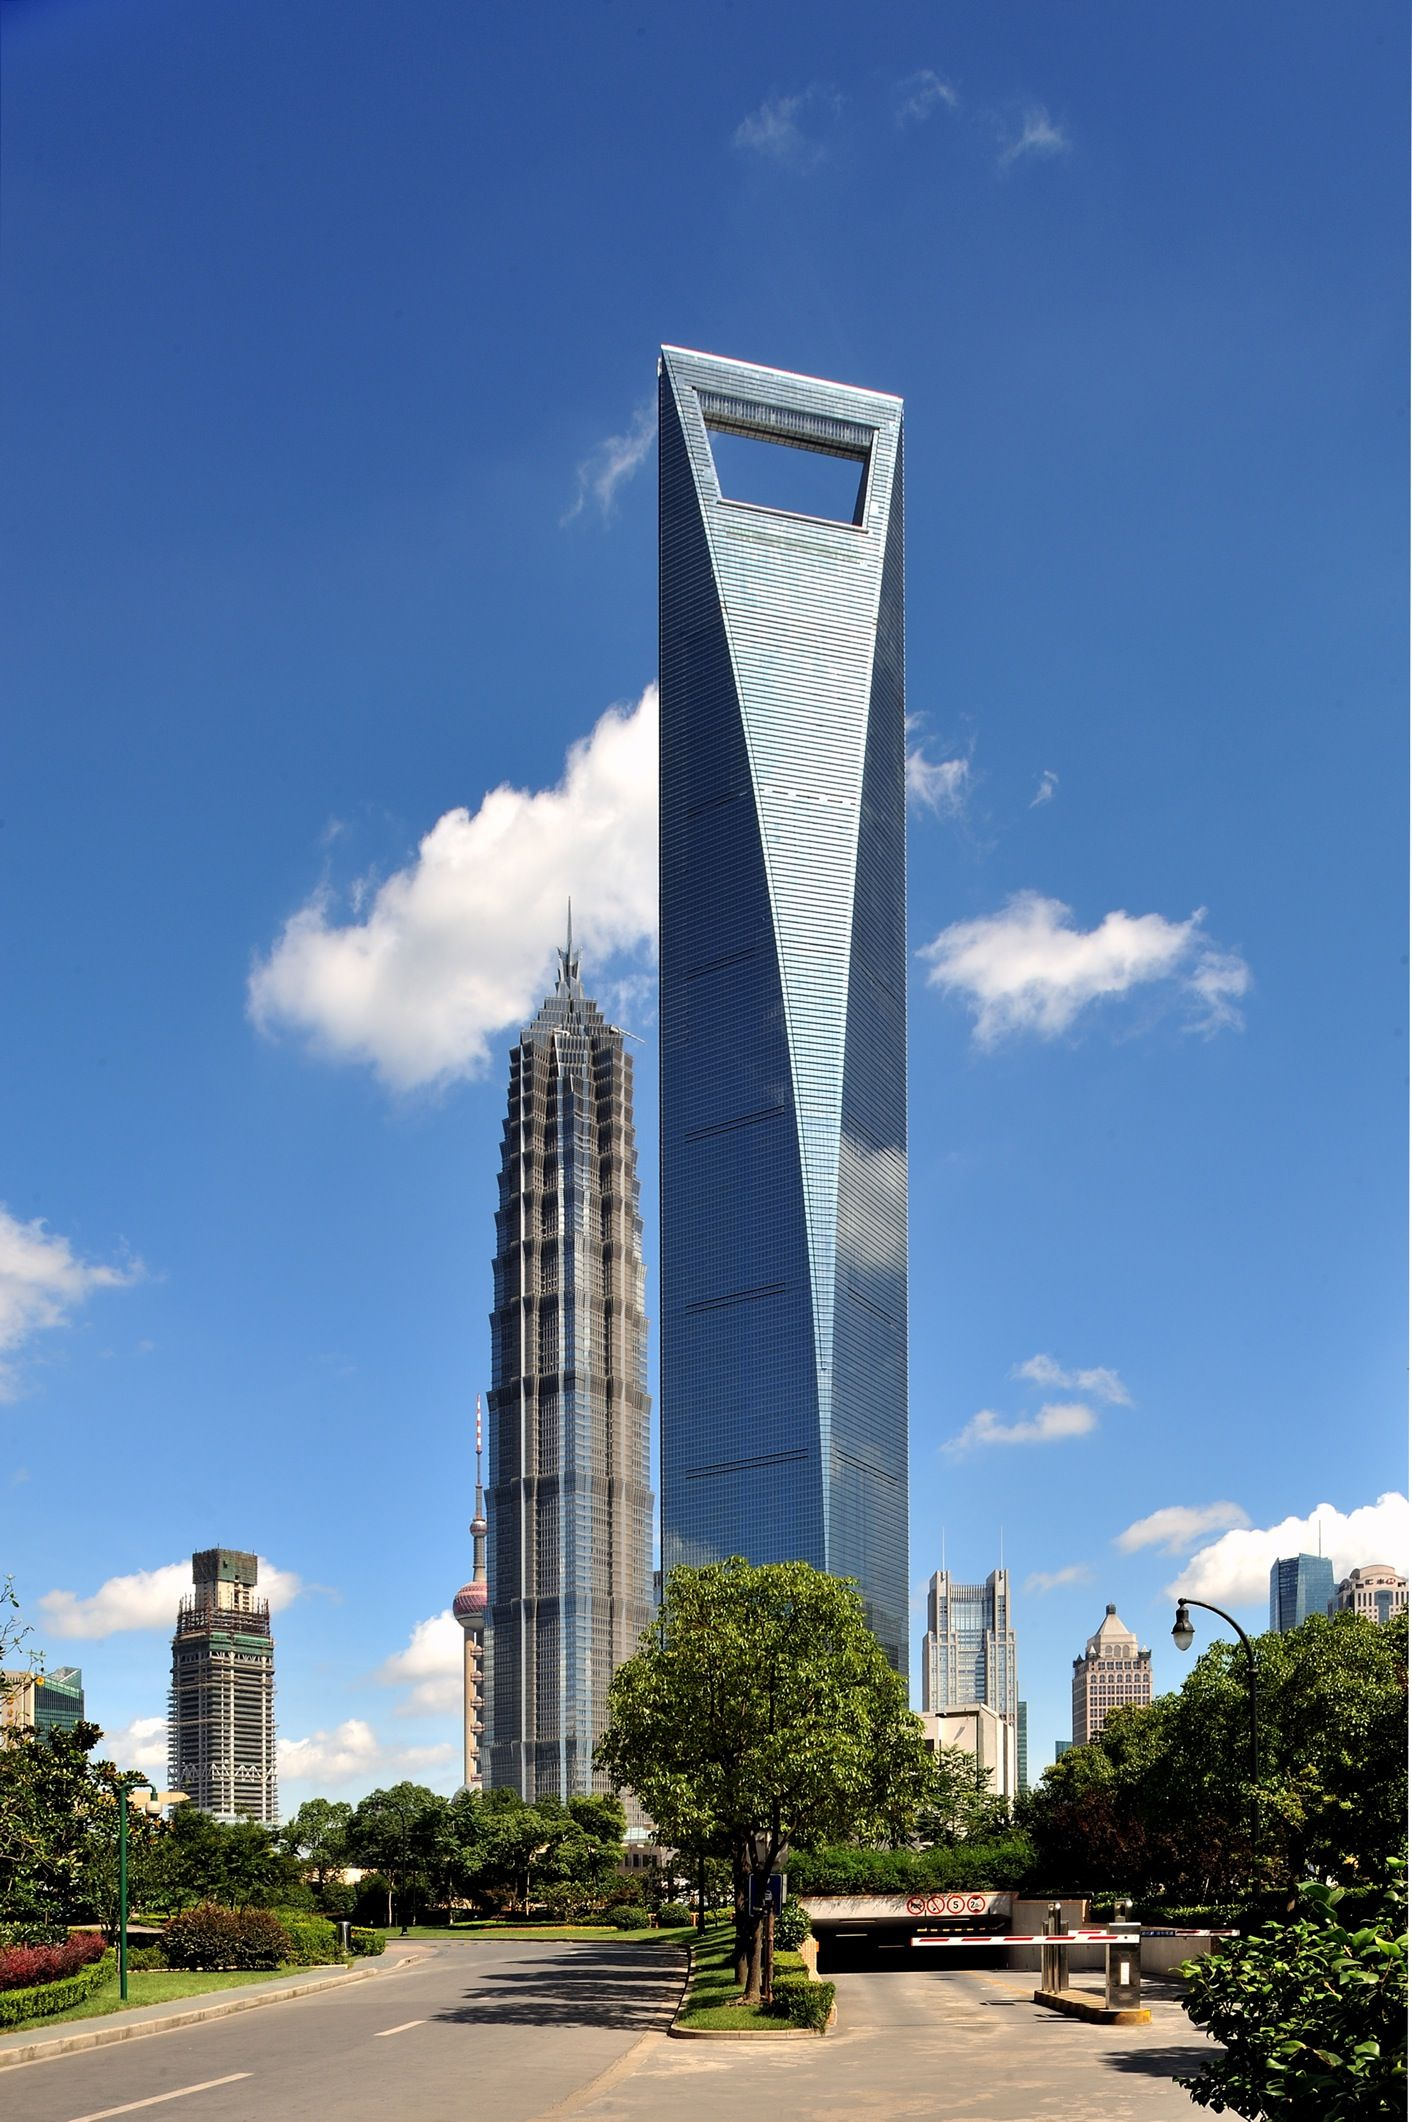 Park Hyatt Shanghai Is A Sophisticated Modern Chinese Residence Occupying The 79th To 93rd Floors Of The Shang Shanghai World Financial Center Amazing Buildings